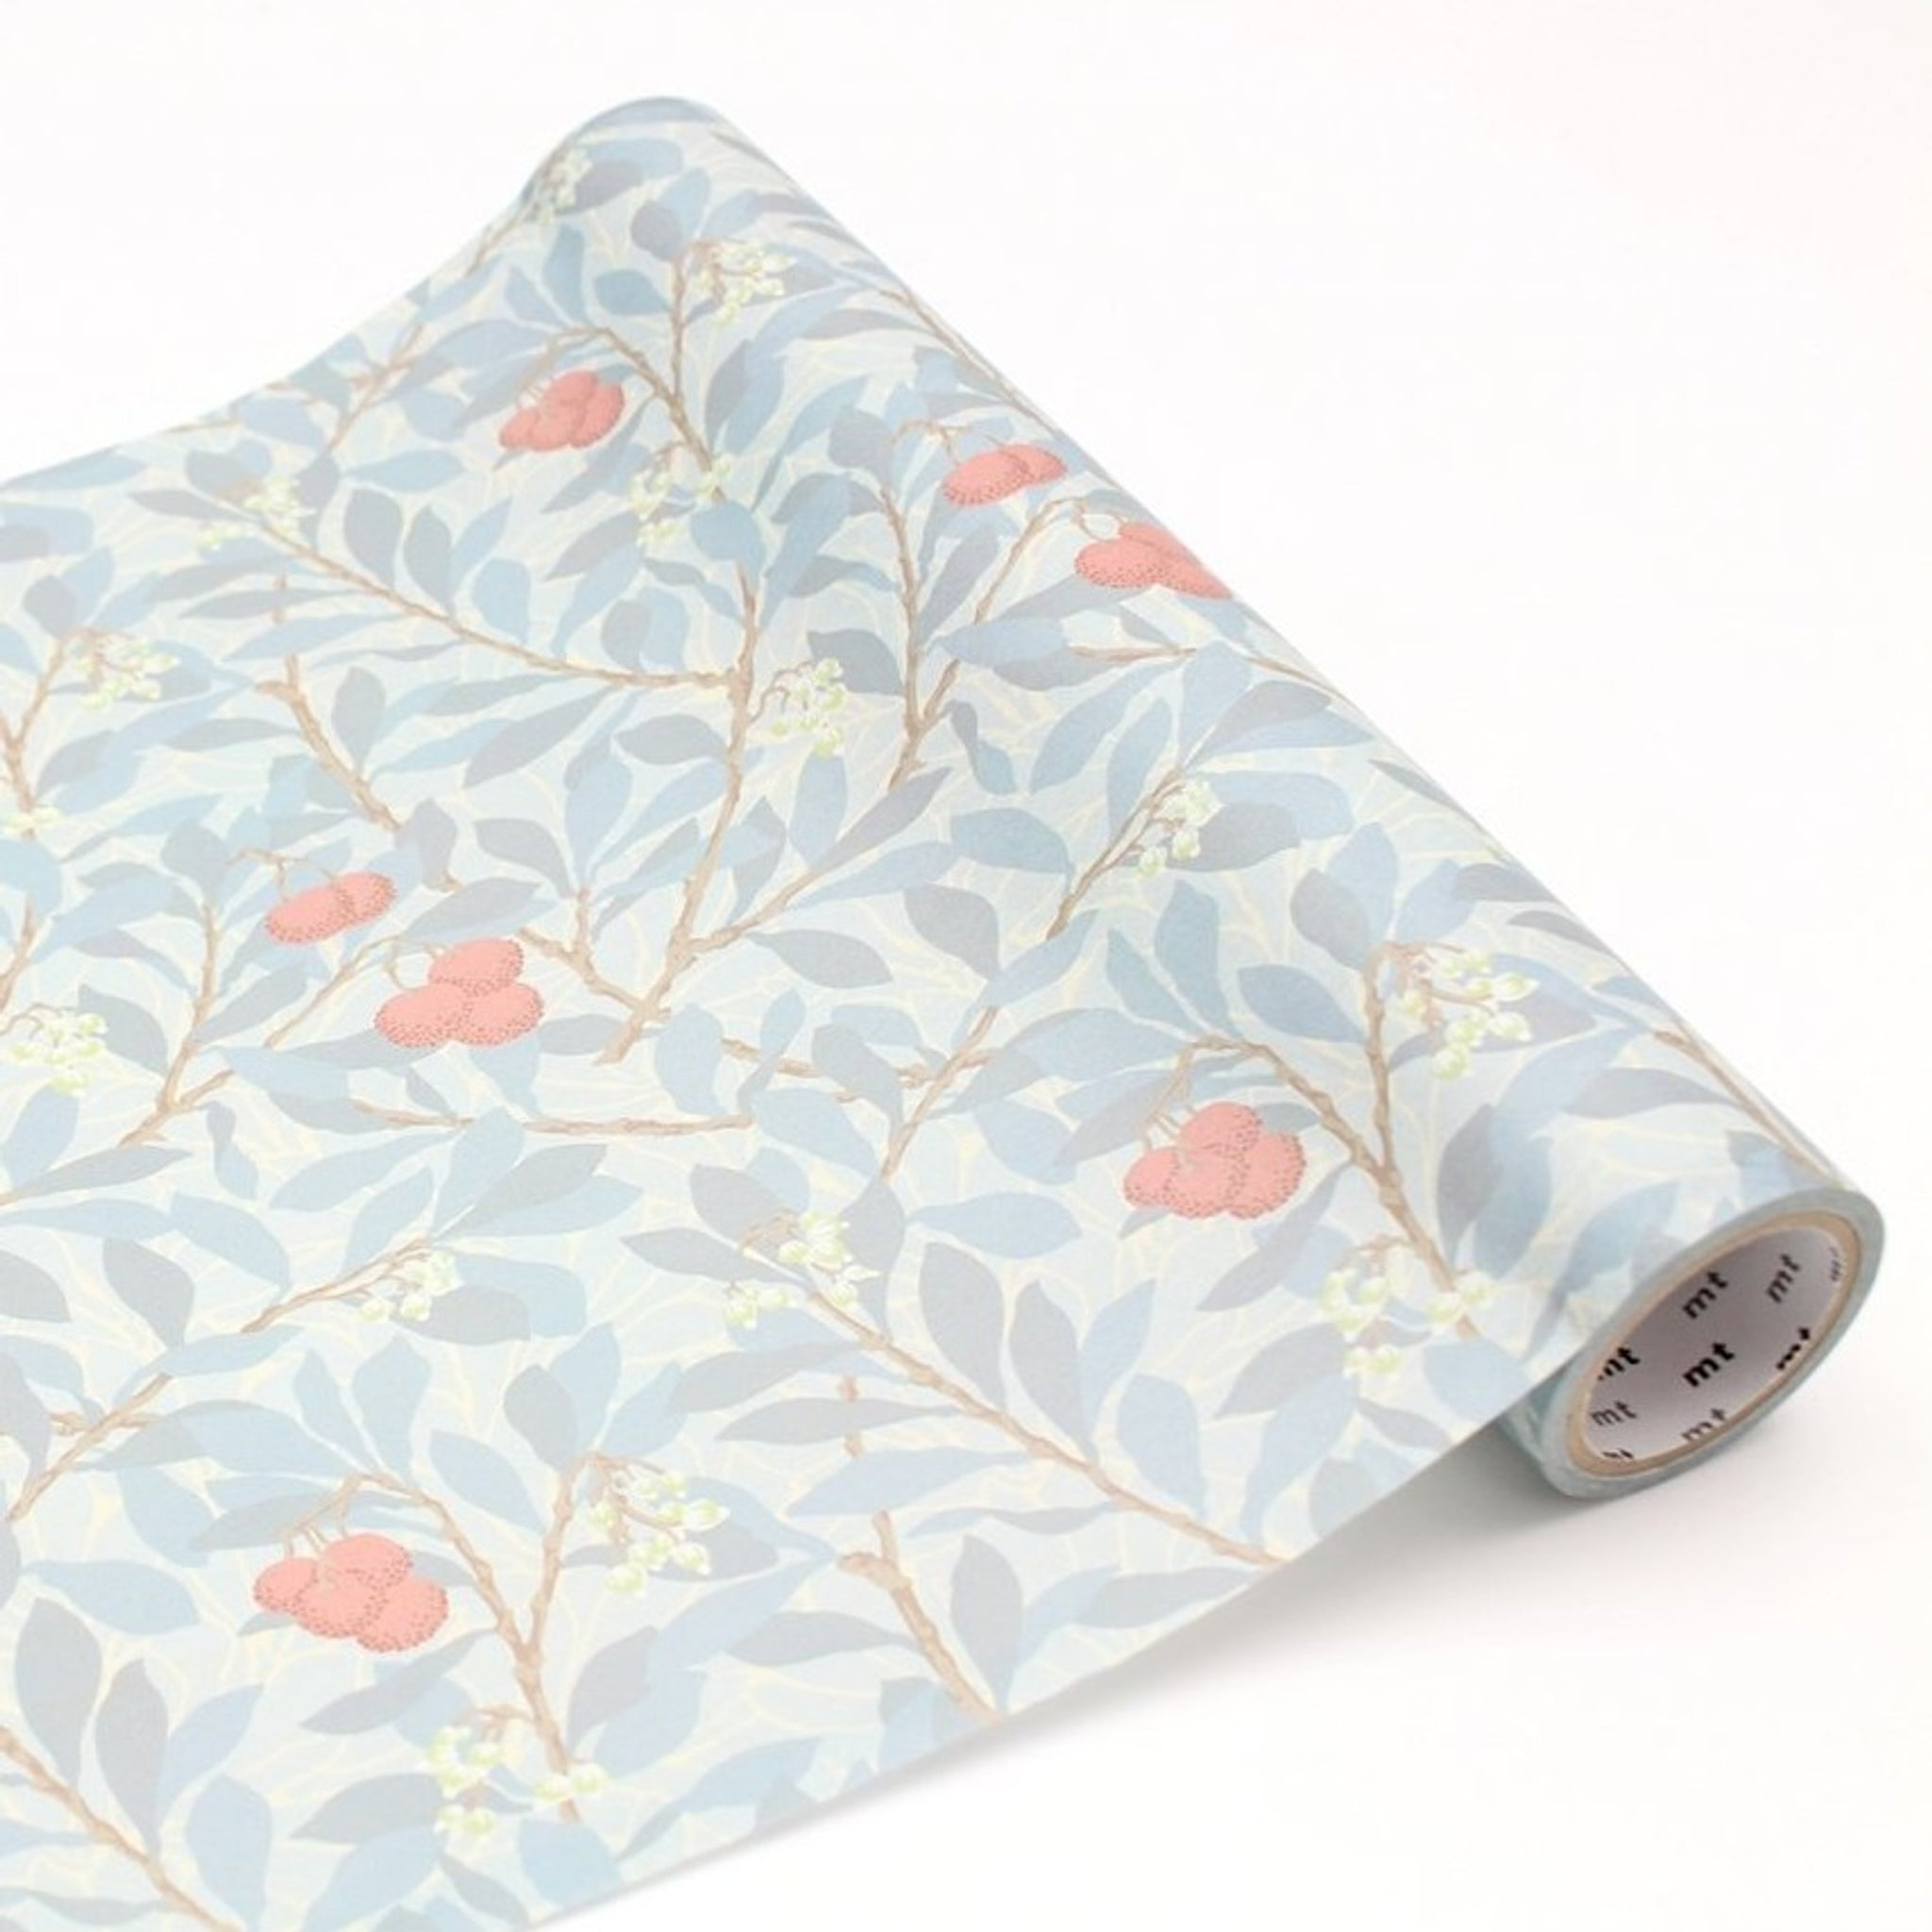 MT Wrap William Morris Arbutus